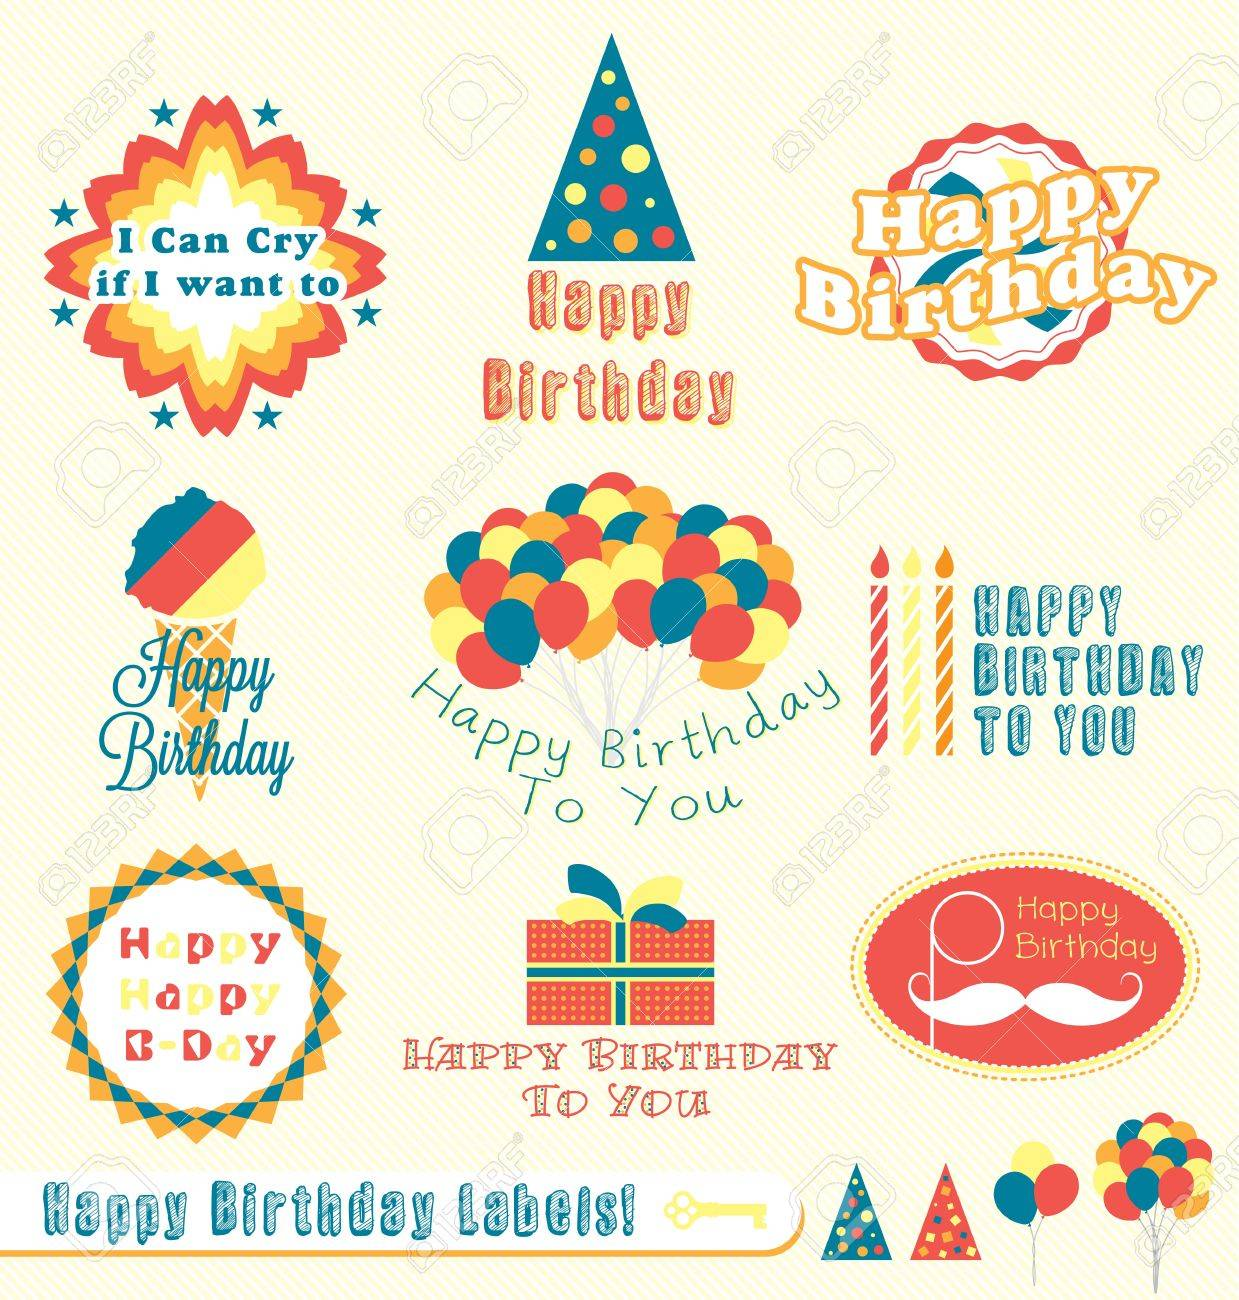 happy birthday labels free ; 15041725-happy-birthday-labels